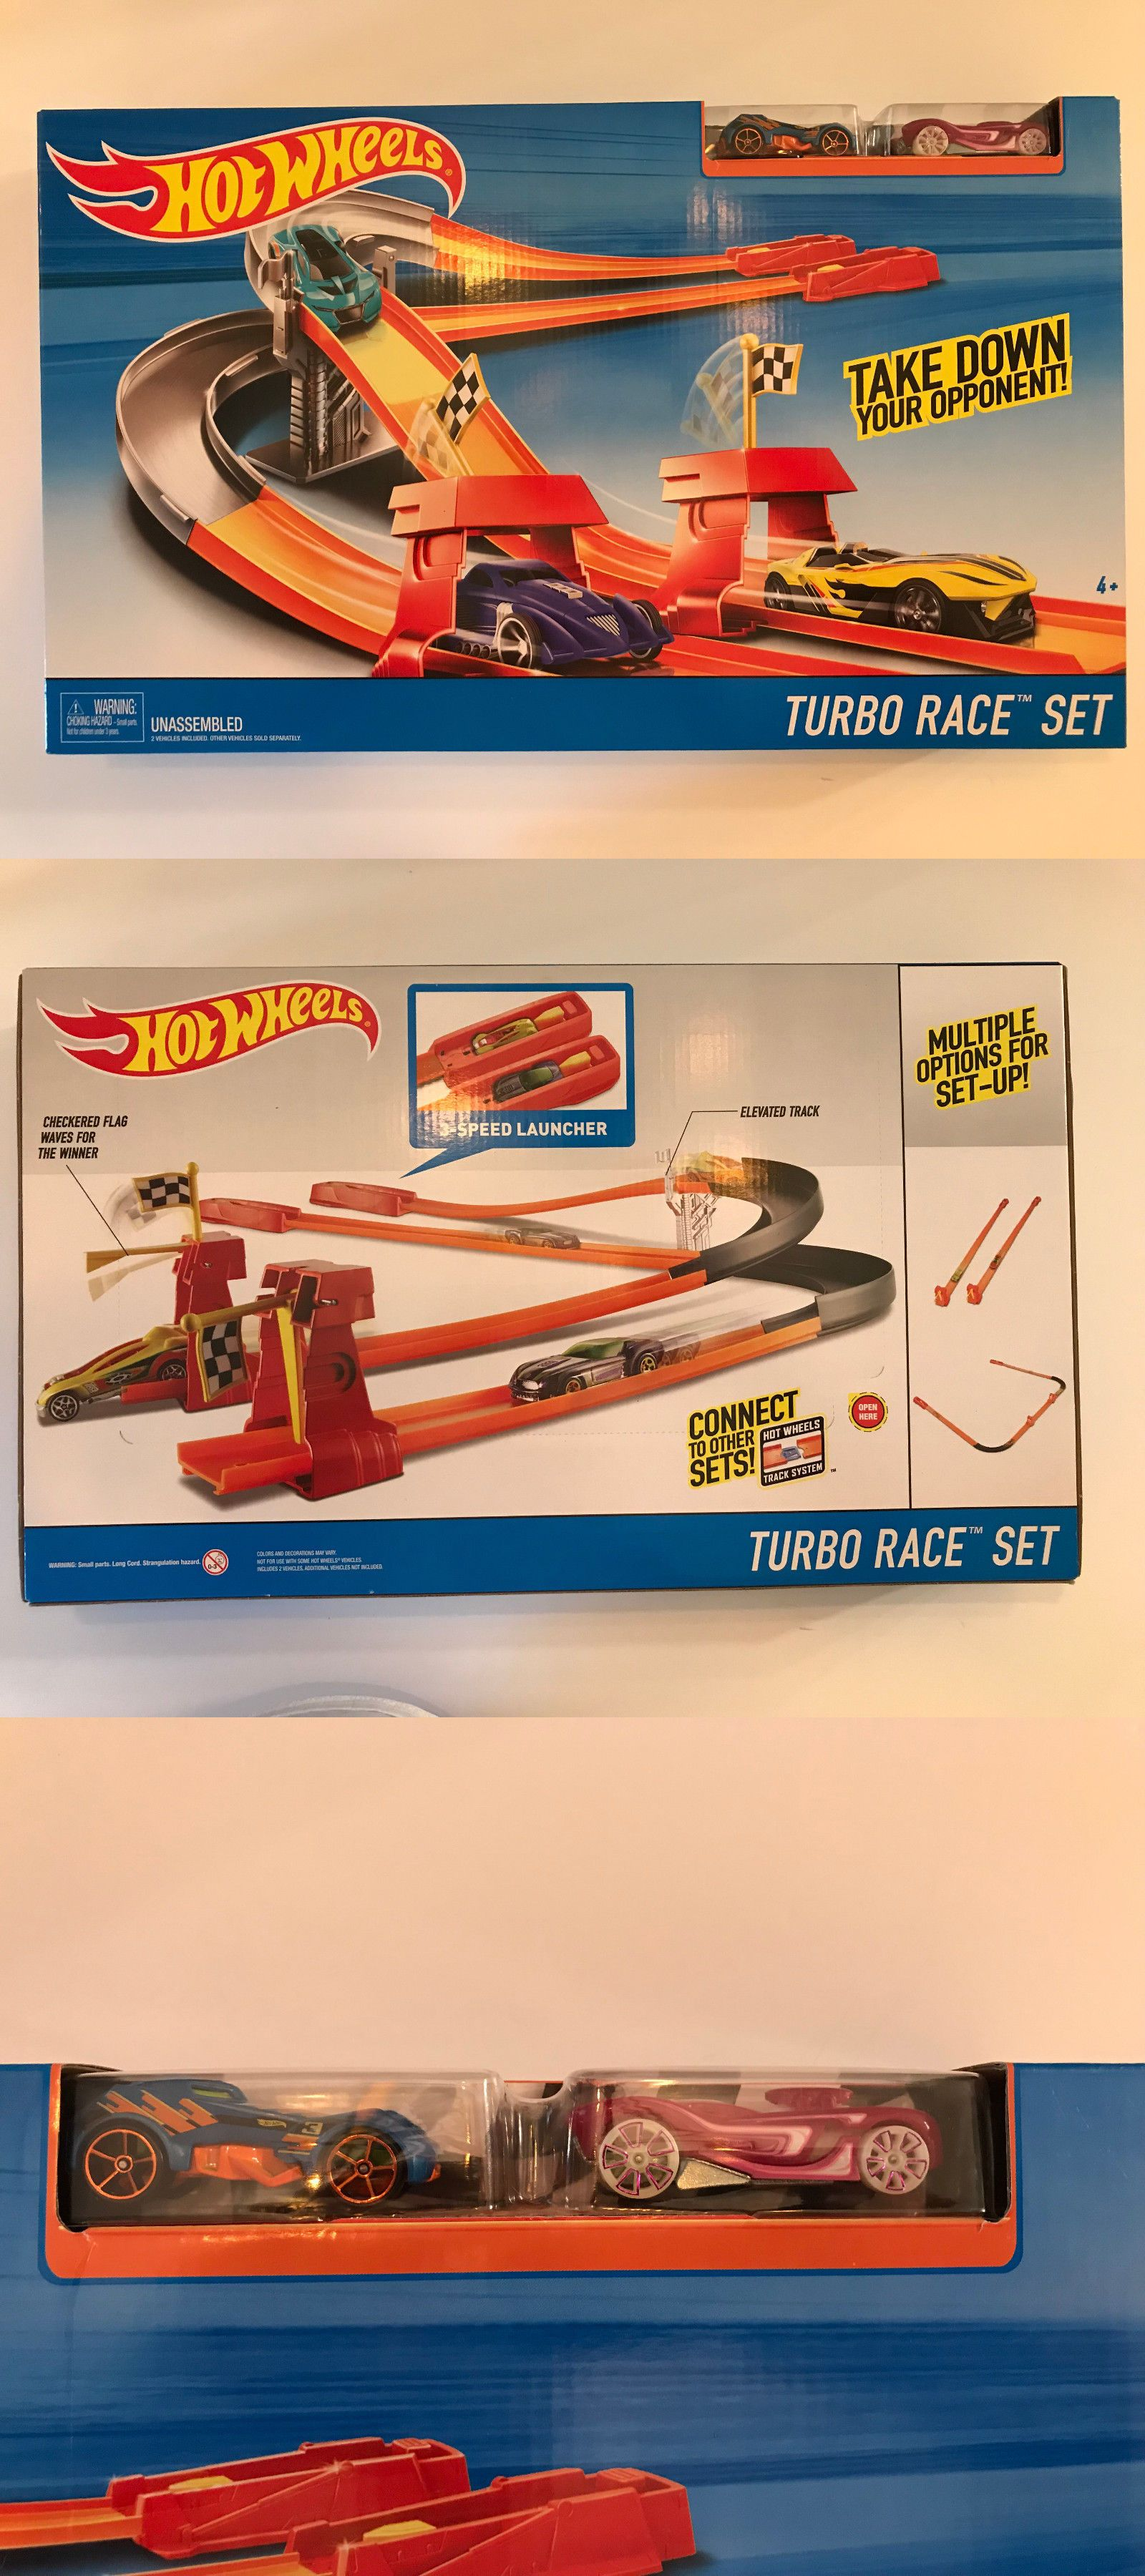 1c8cf9b9f68 Buildings and Set Parts 171137  Hot Wheels Turbo Race Set Opponent Take  Down Expandable Set W Exclusive Car Nib -  BUY IT NOW ONLY   22.95 on eBay!